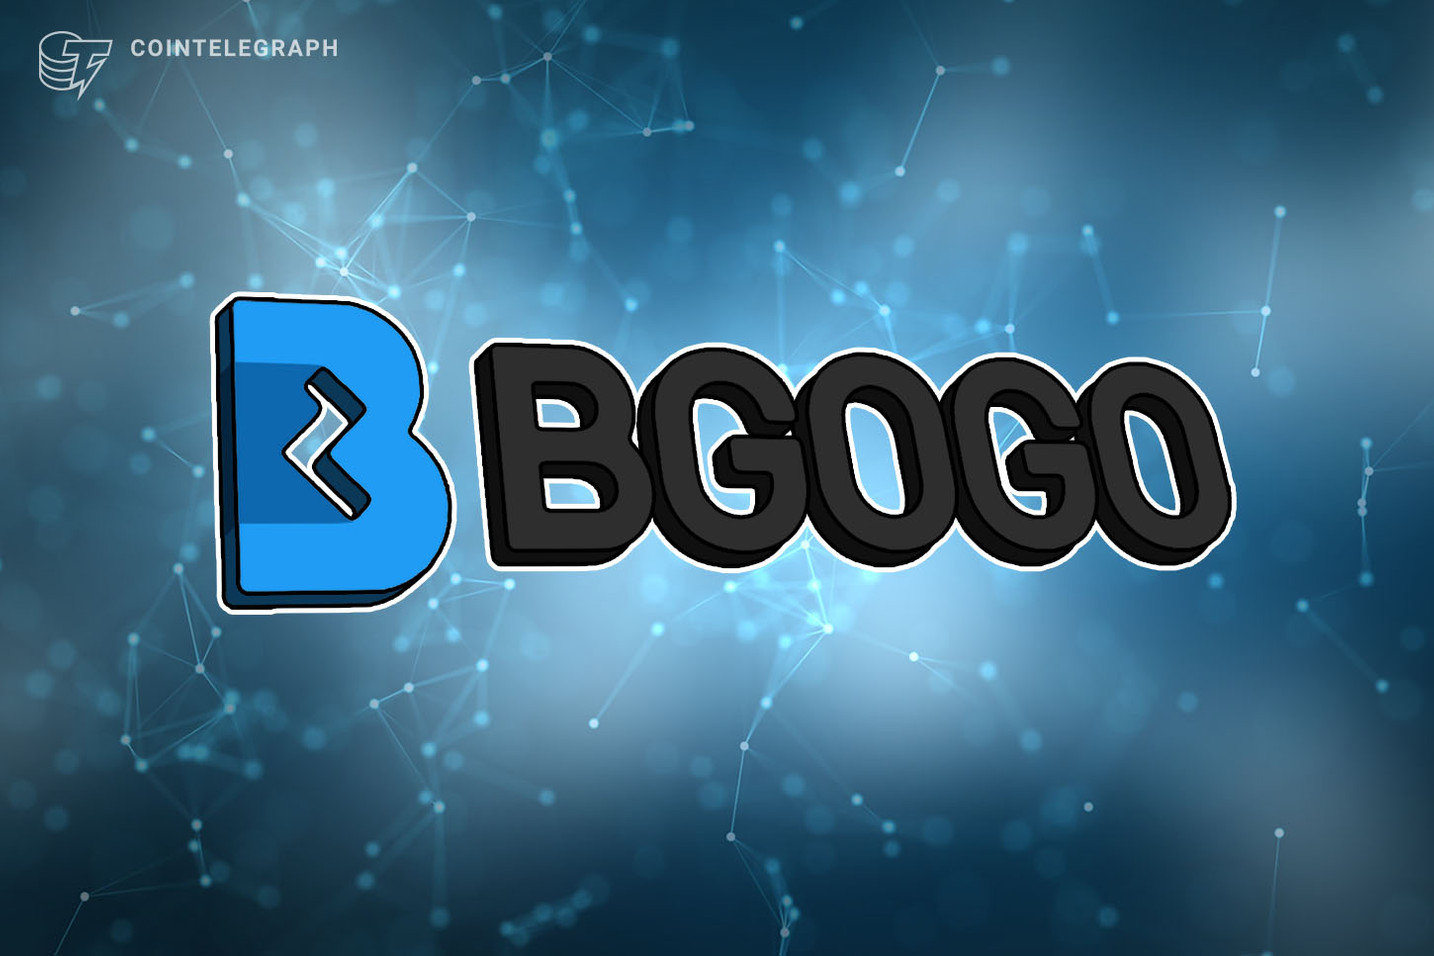 Bgogo Is Making a Huge Comeback, with Sights Set on Making BGG the Next 100X Token